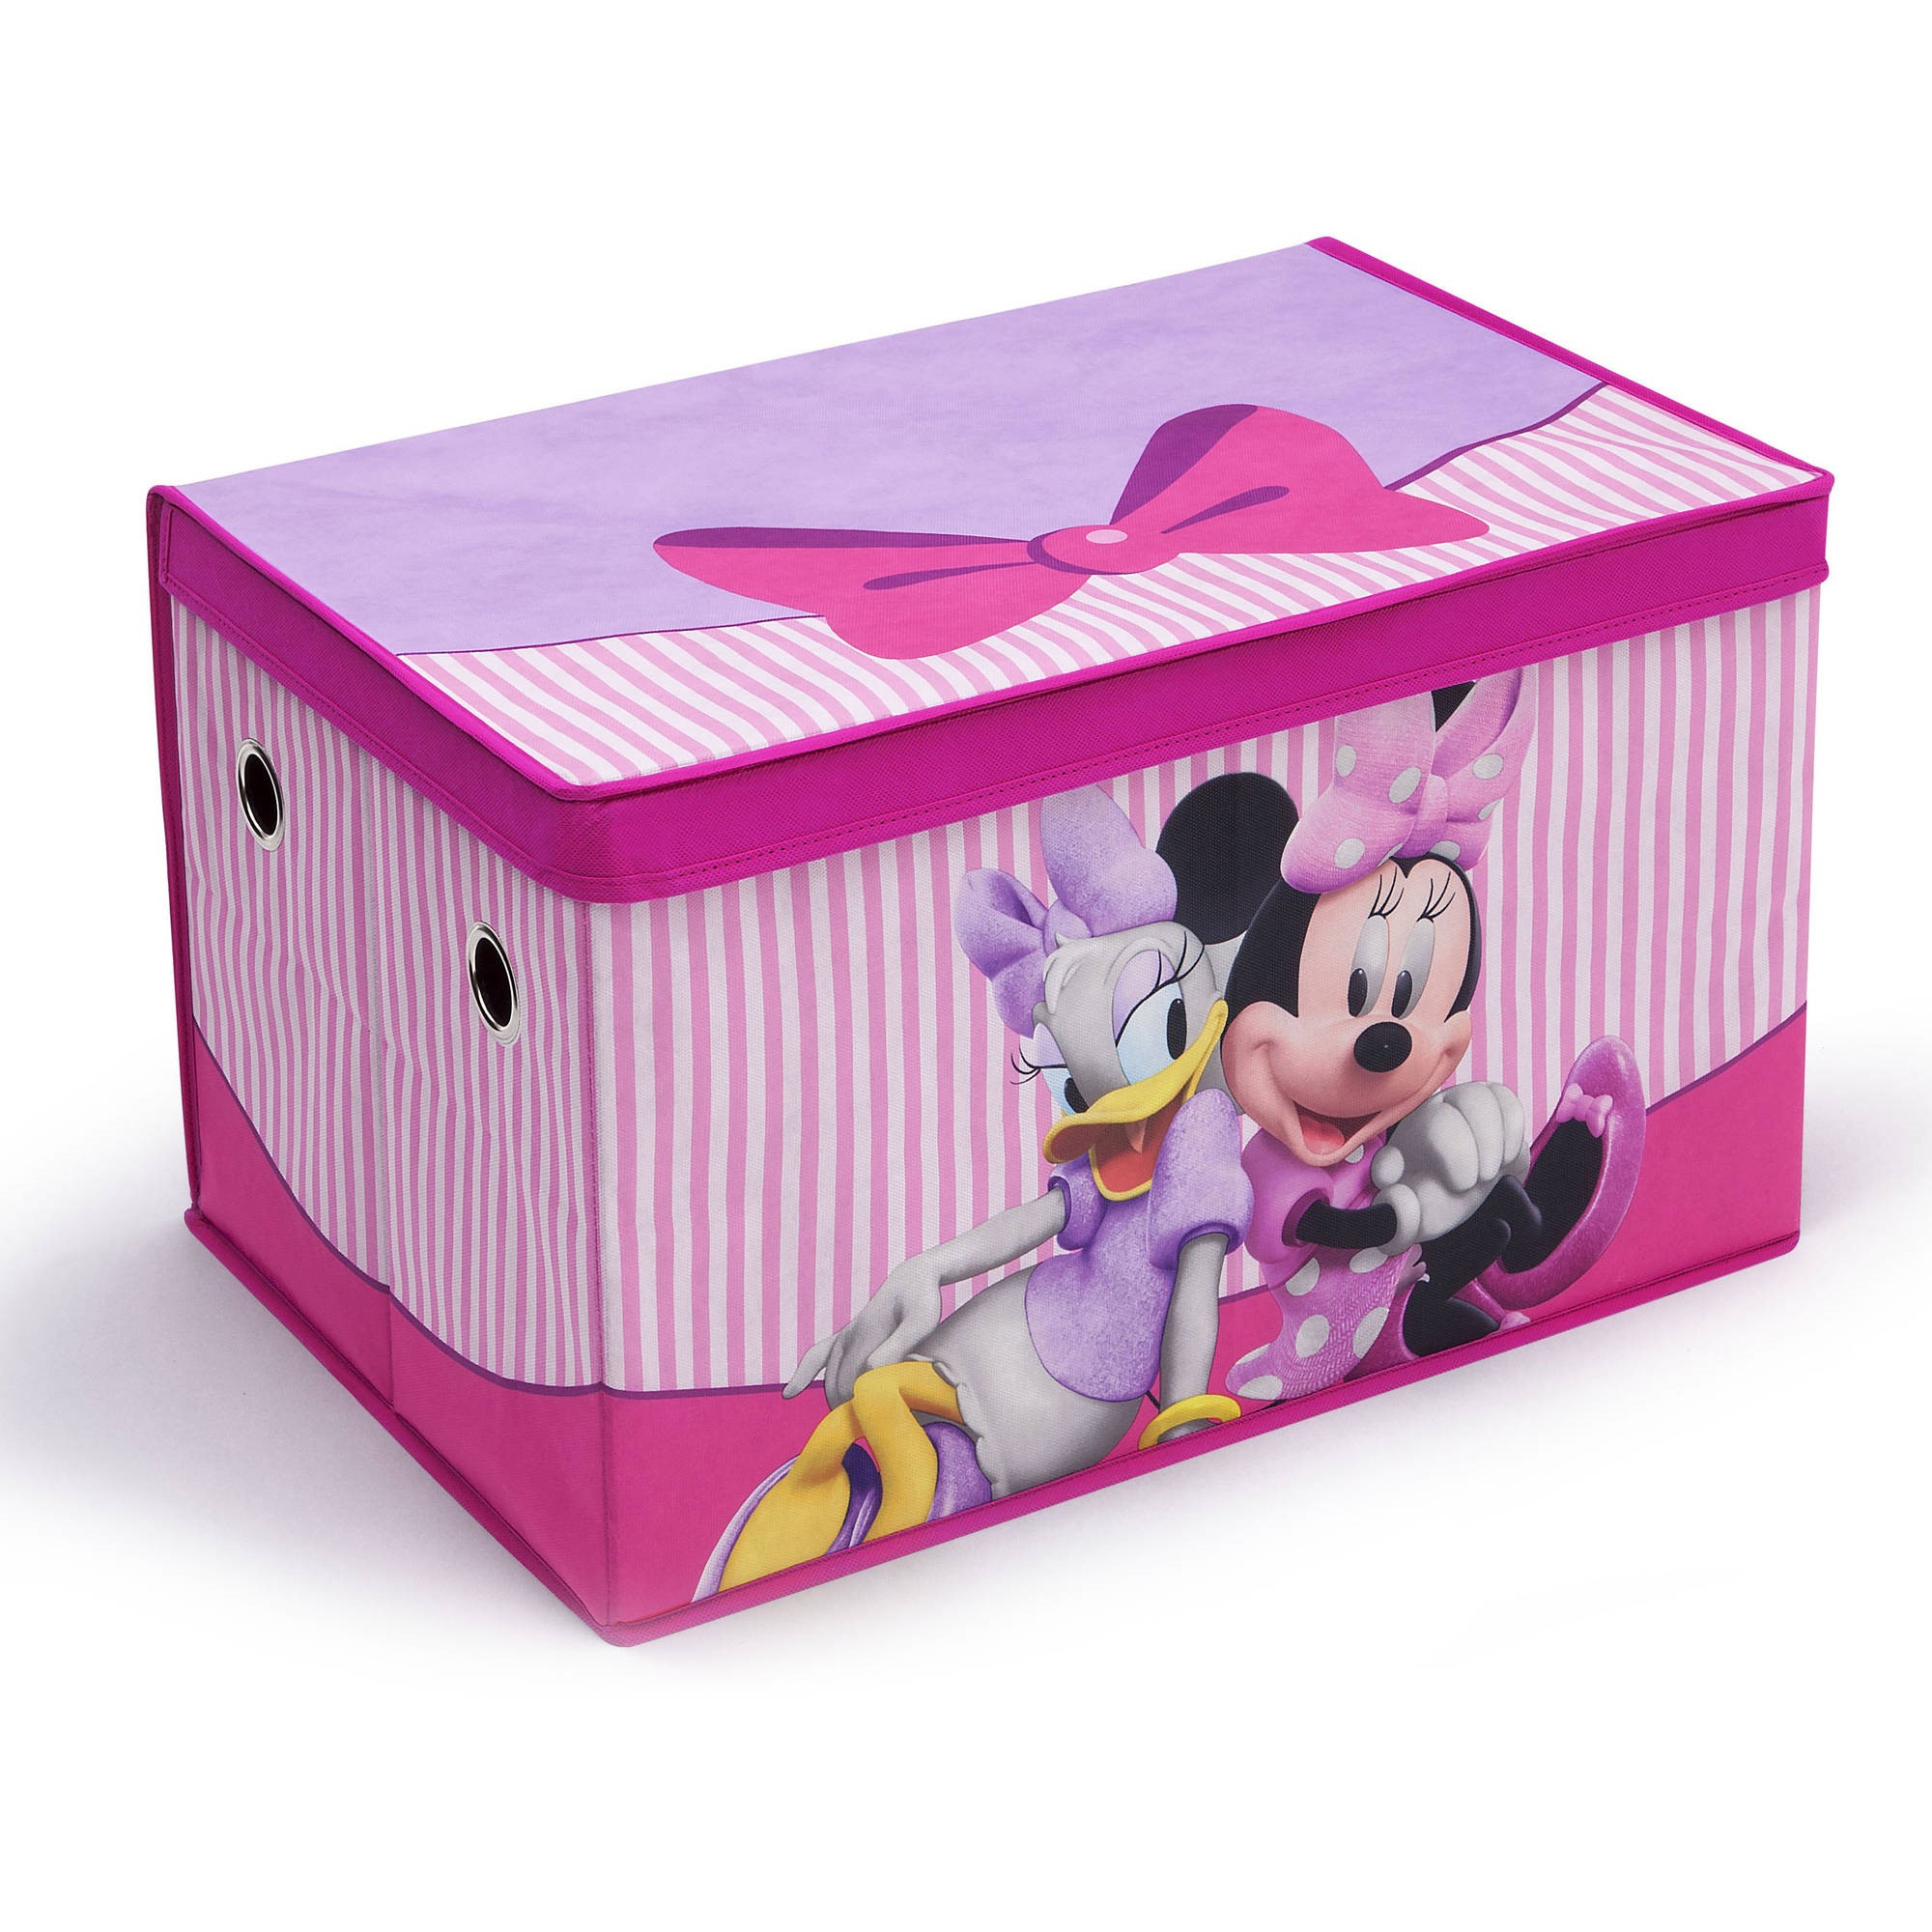 Disney Minnie Mouse Fabric Toy Box